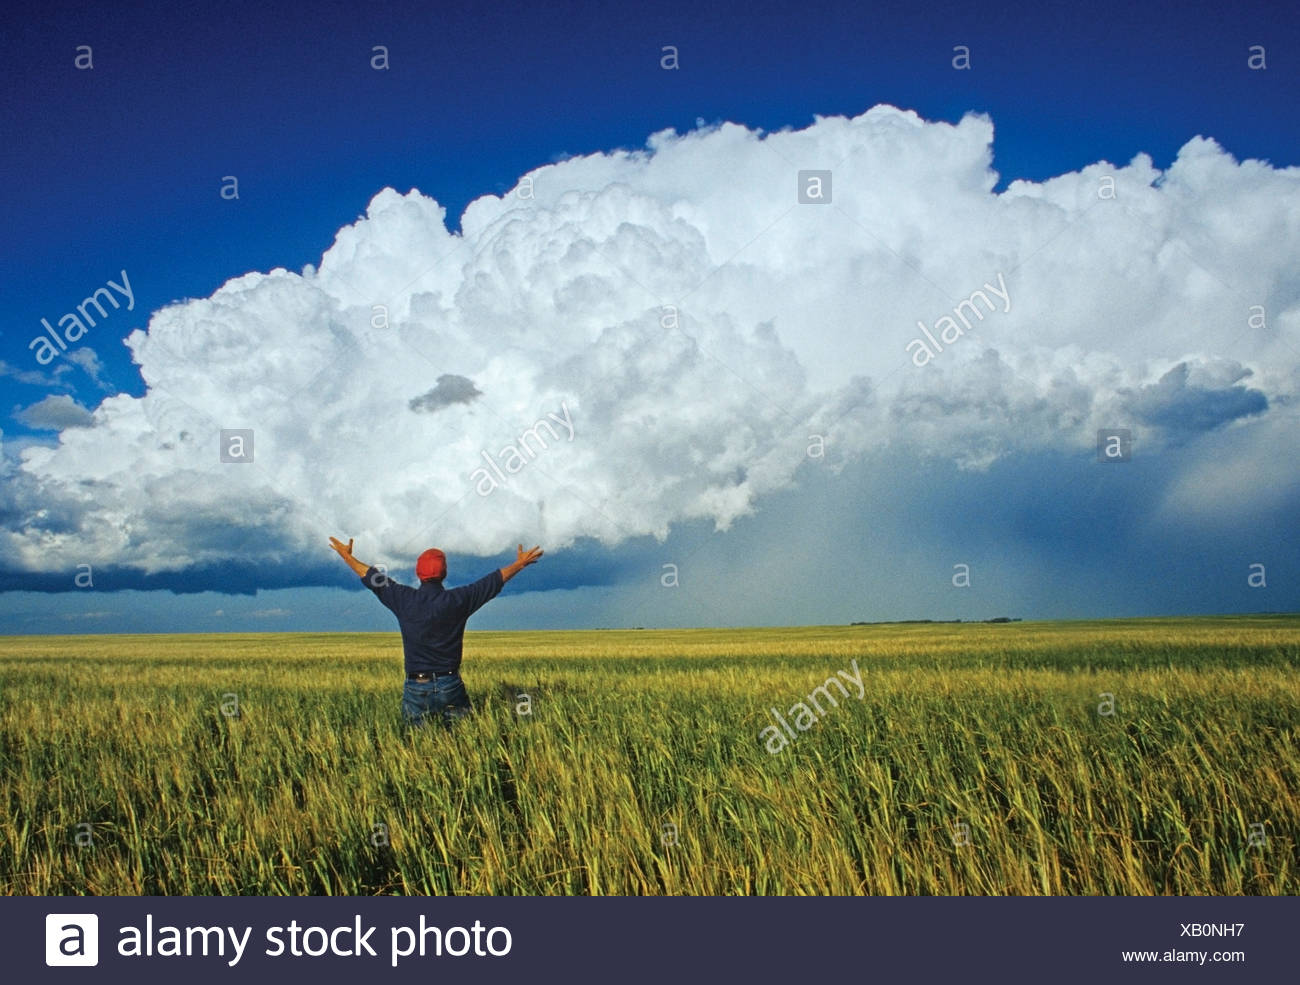 A farmer looks out over a barley field with a cumulonimbus cloud mass in the background near Bromhead, Saskatchewan, Canada - Stock Image